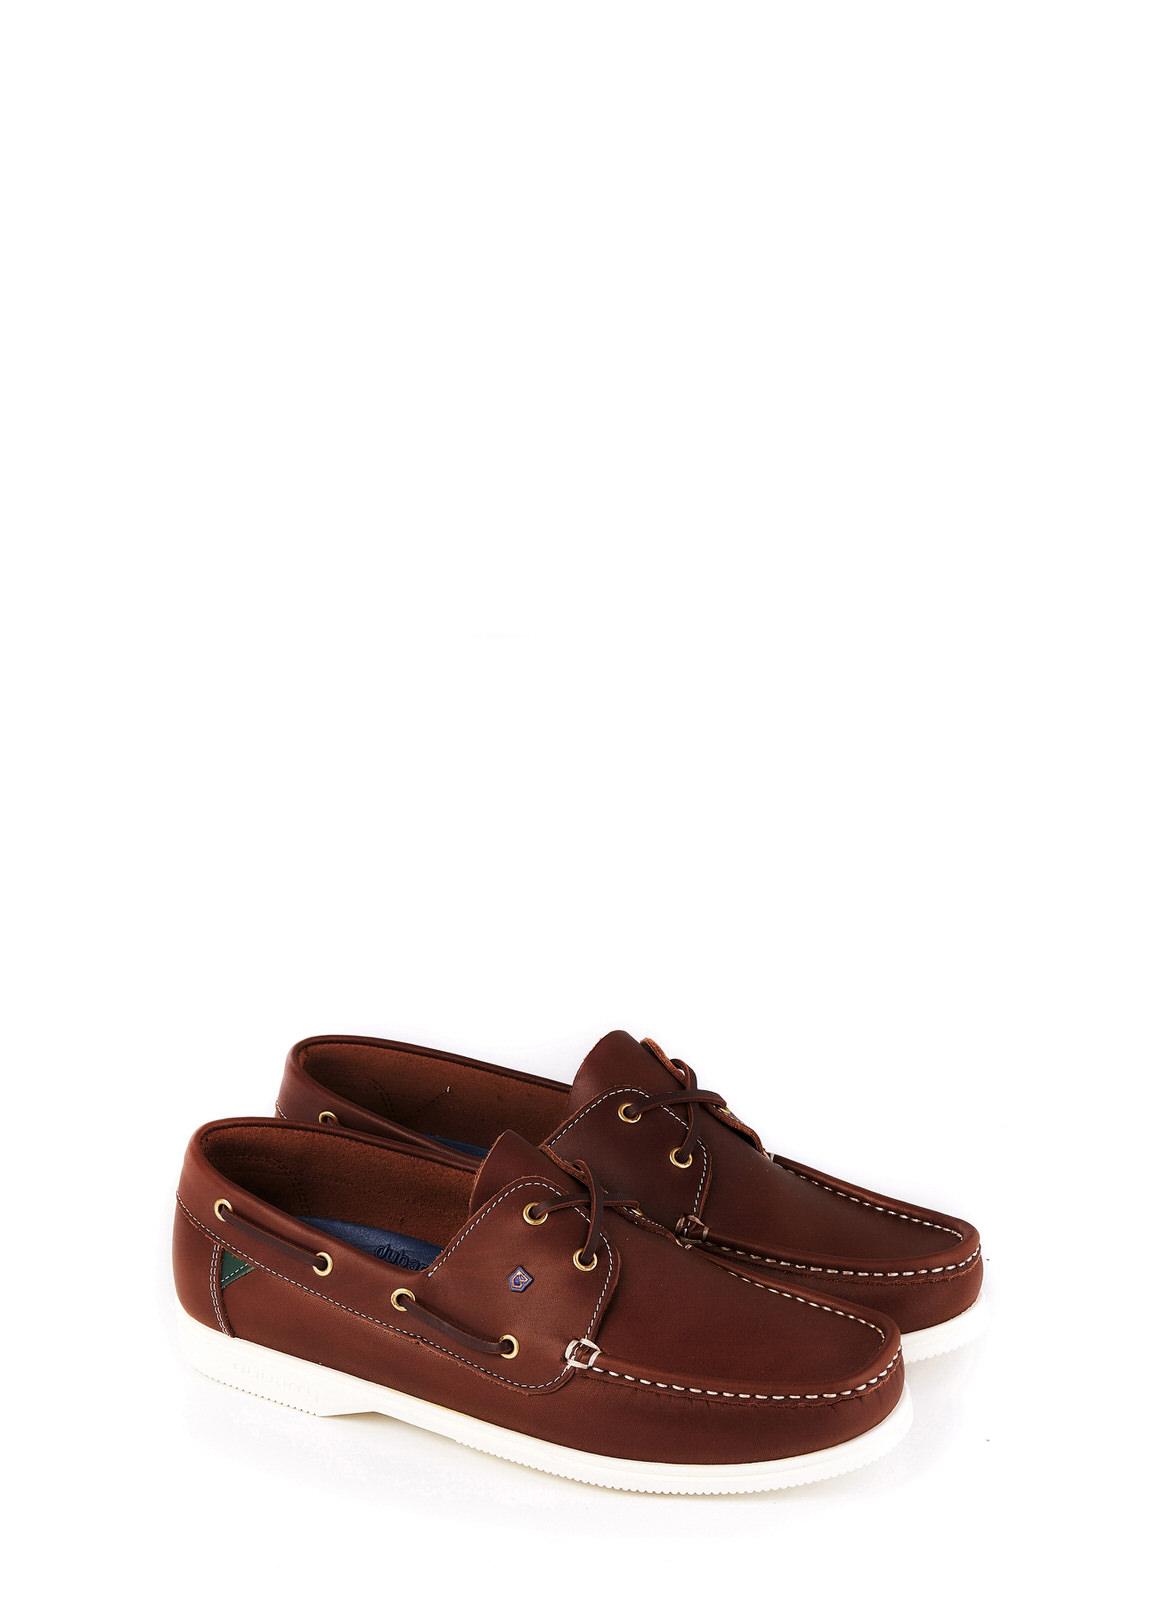 Admirals Deck Shoe - Brown